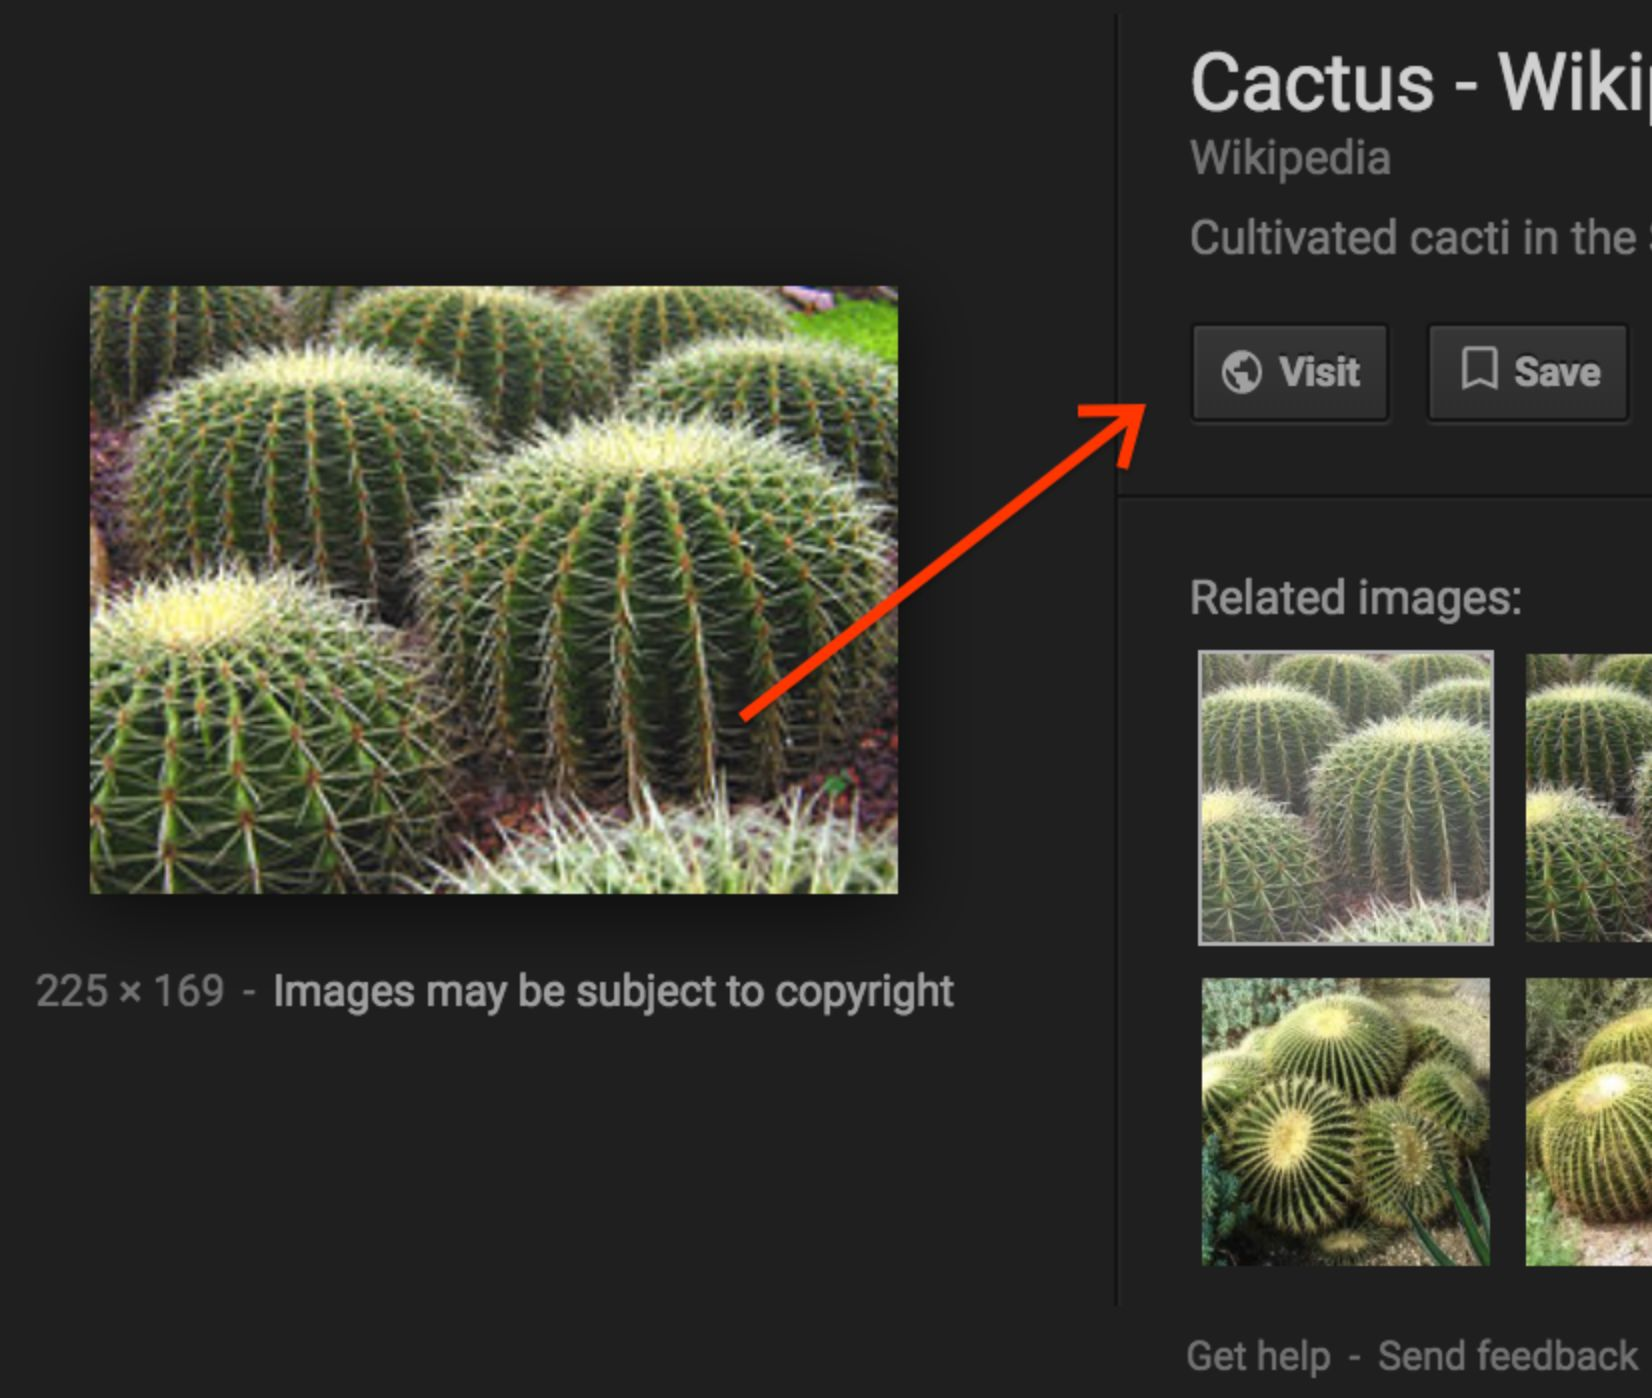 Google Made A Small Change To Image Search, But It's A Big